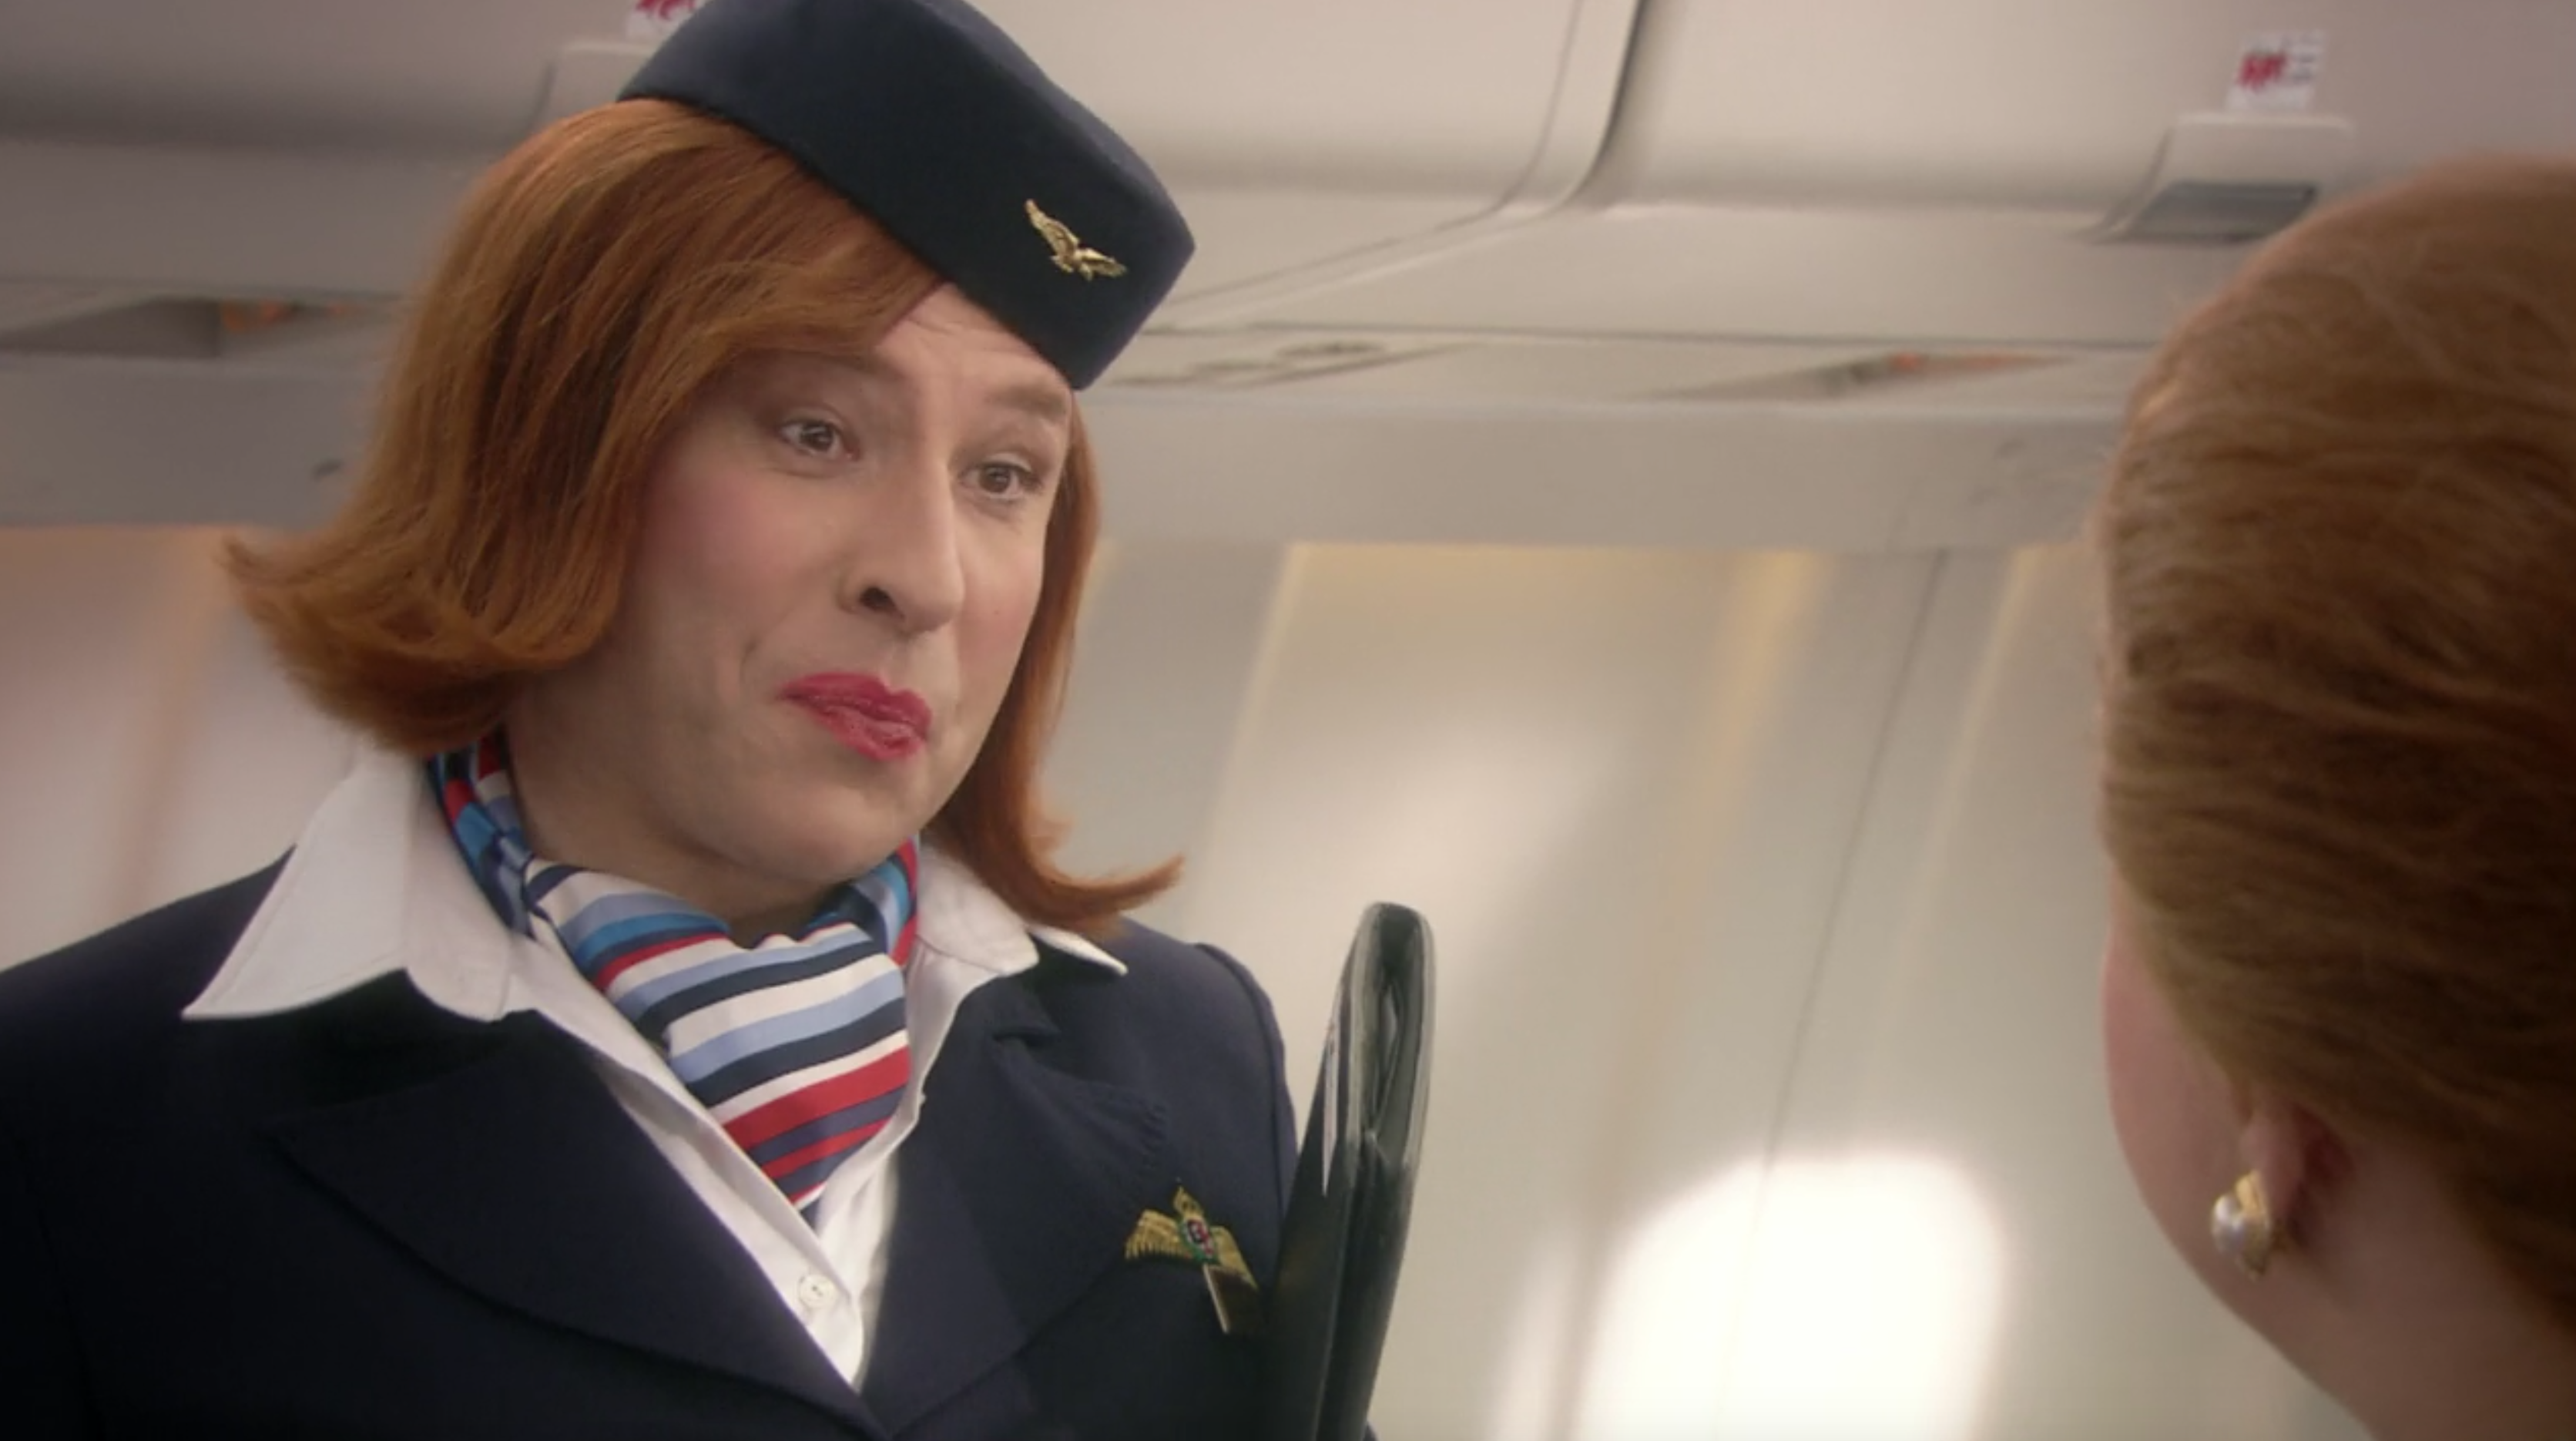 013504d455 I hate Penny Carter with every fibre of my being. She's the worst air  hostess I've ever encountered and I've flown [redacted] on several  occasions.